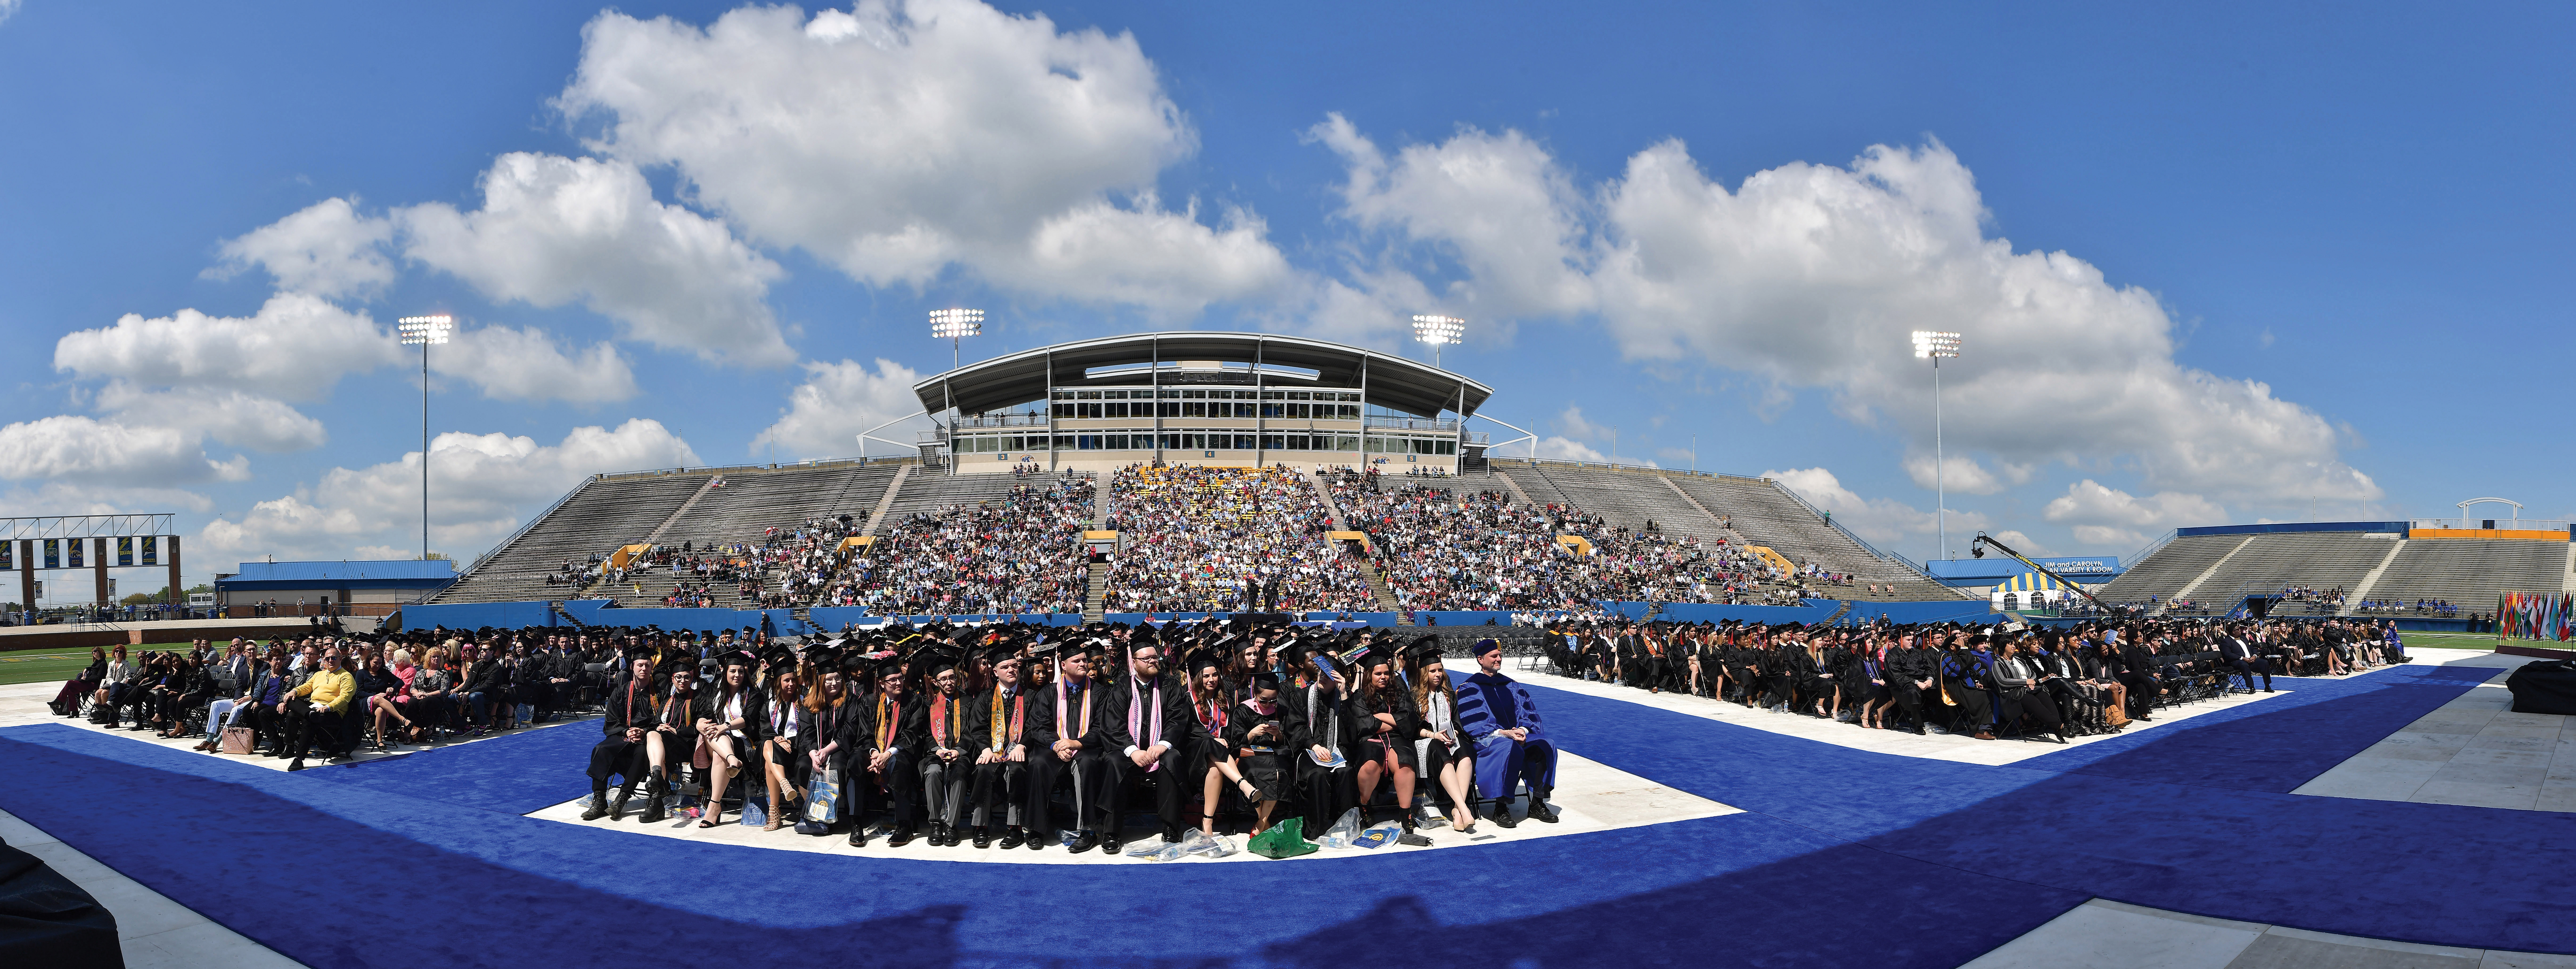 One University Commencement May 2017